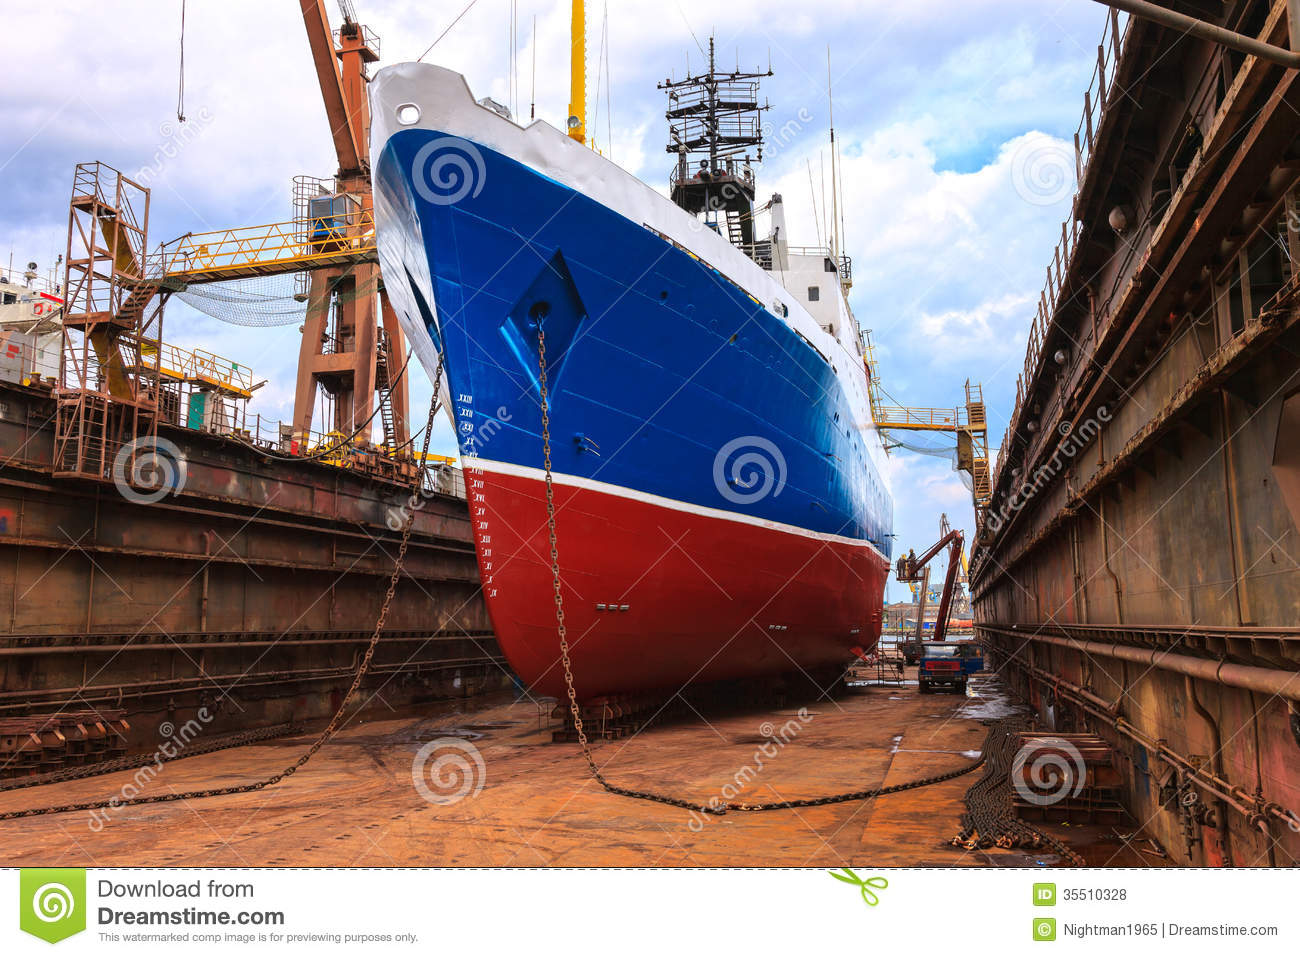 Ship in the floating dock stock photo. Image of engineering - 35510328